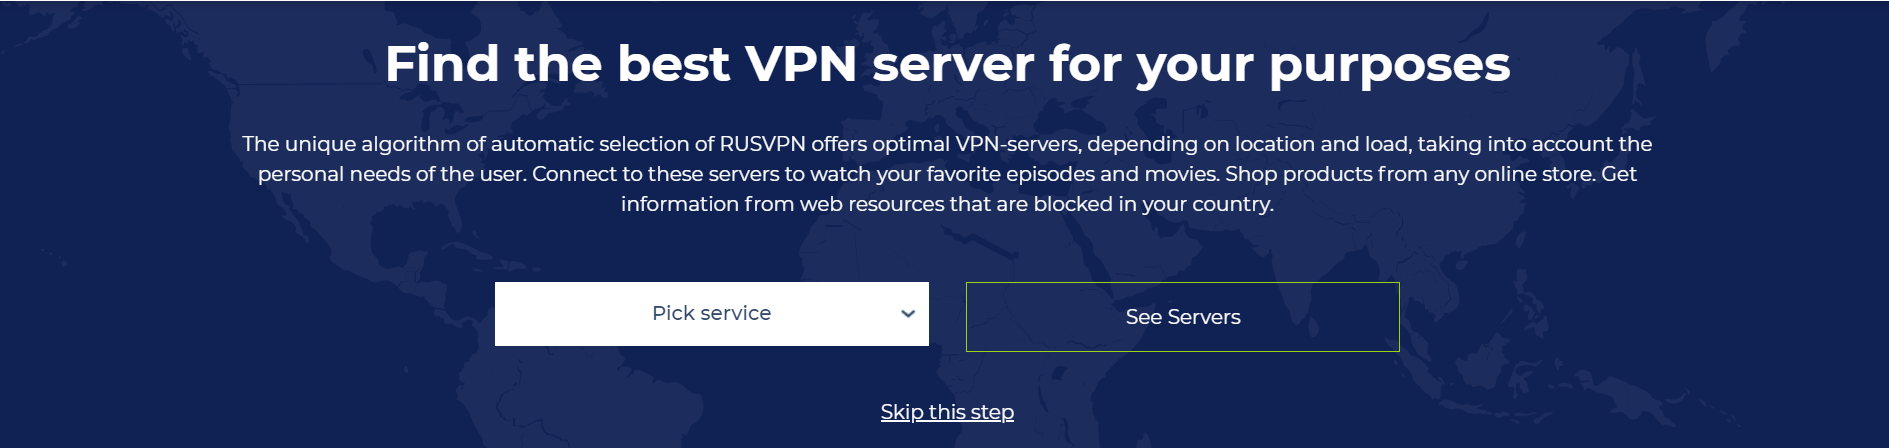 Find the best VPN server for your purposes